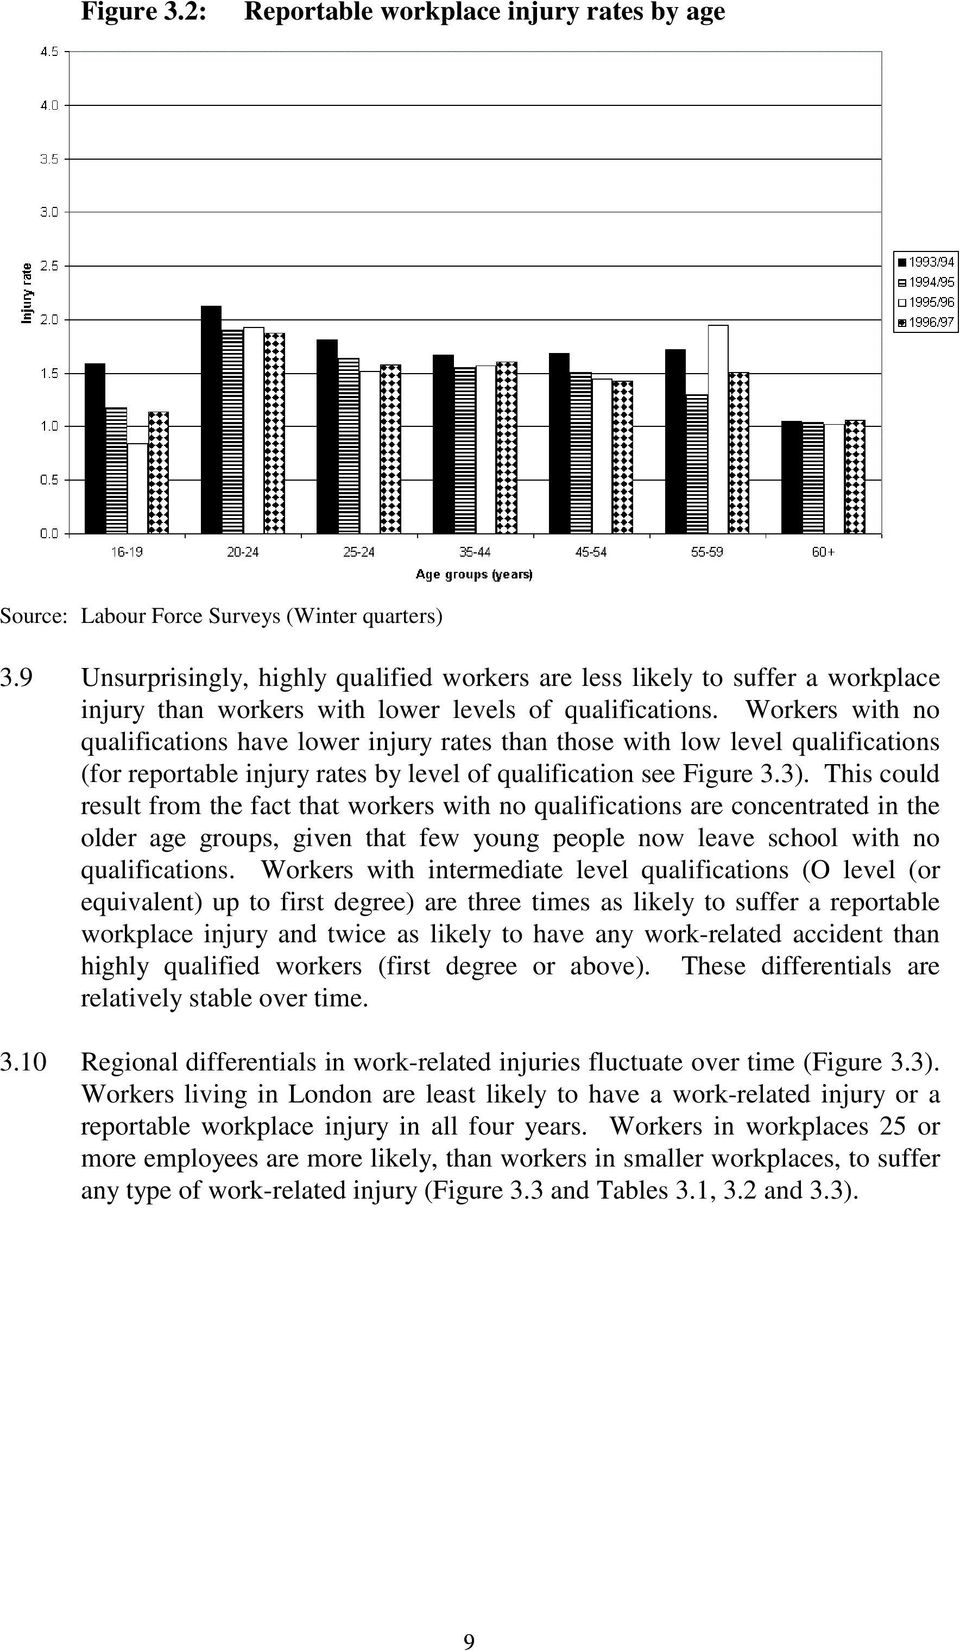 Workers with no qualifications have lower injury rates than those with low level qualifications (for reportable injury rates by level of qualification see Figure 3.3).